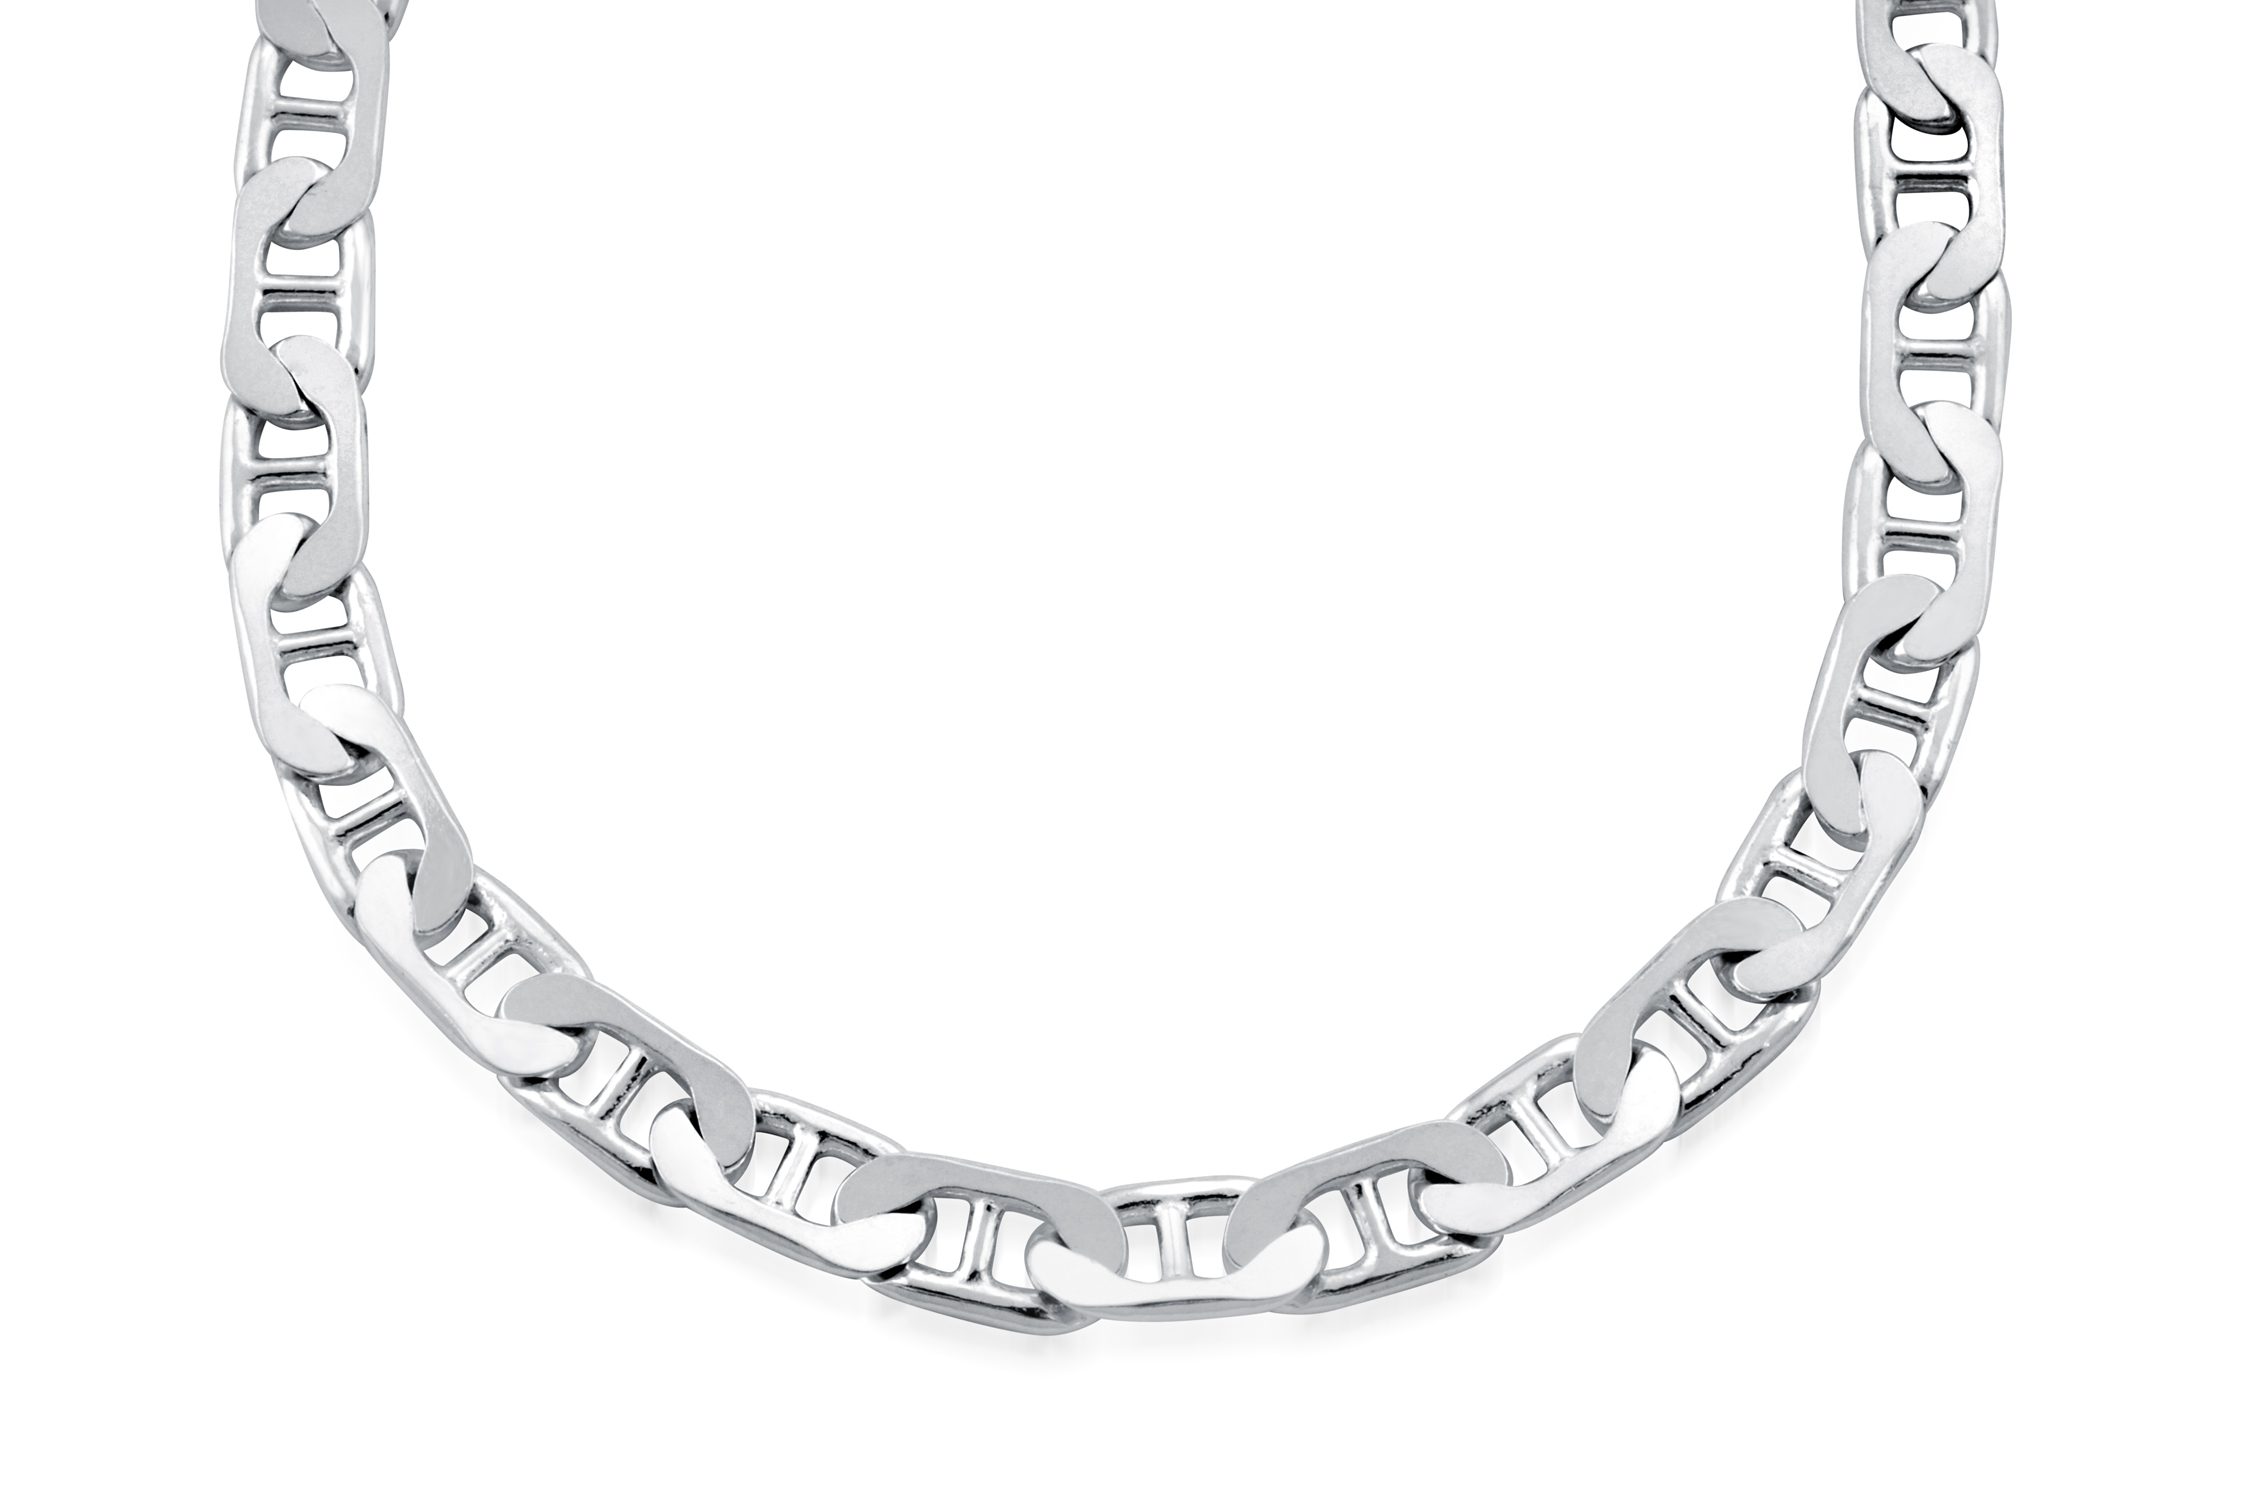 7'' Flat marina (Gucci style) bracelet for women  -  Sterling silver